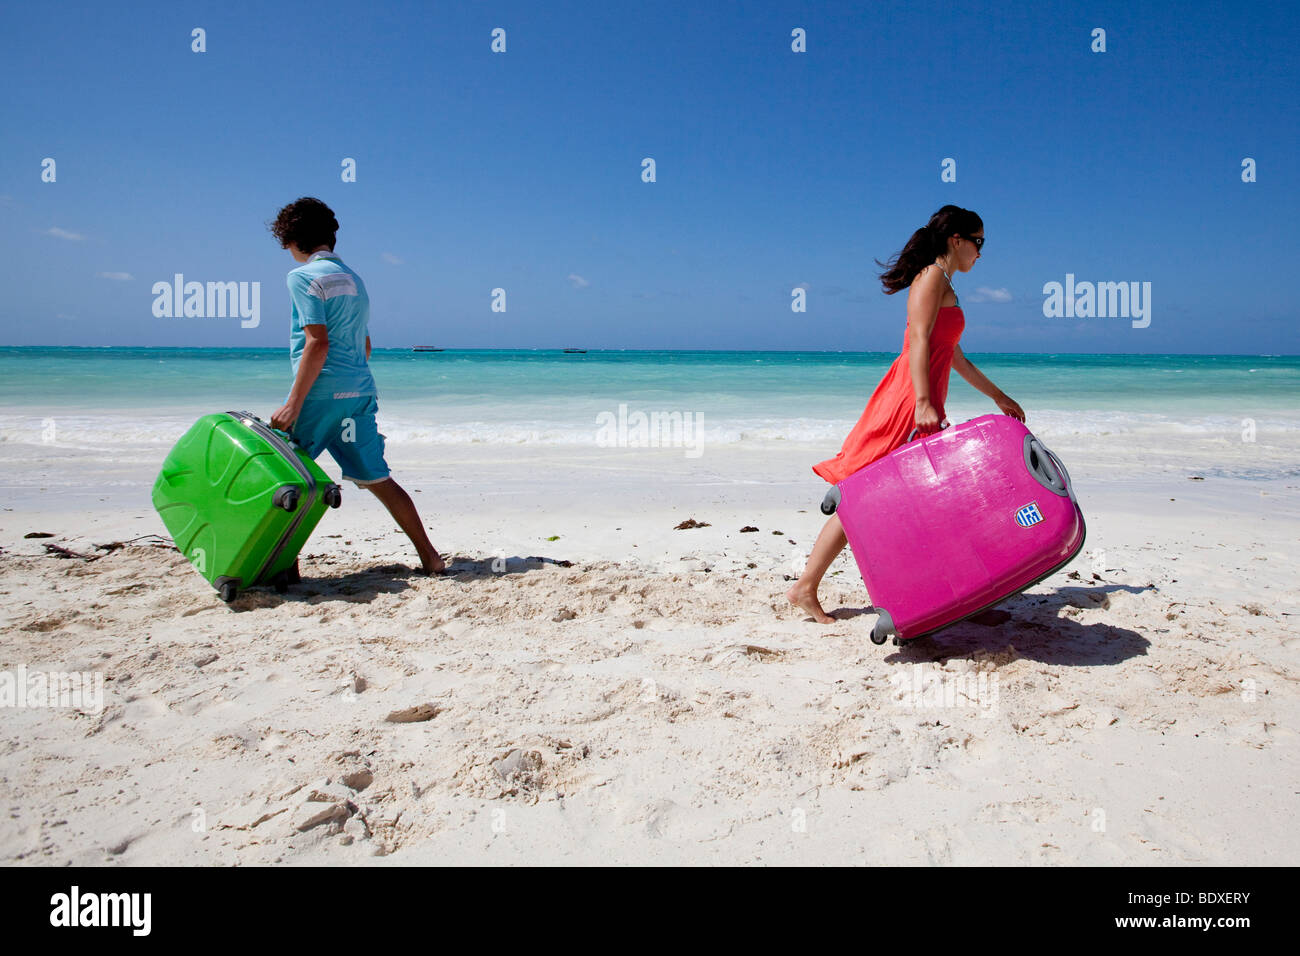 Two teenagers parting ways on holiday - Stock Image